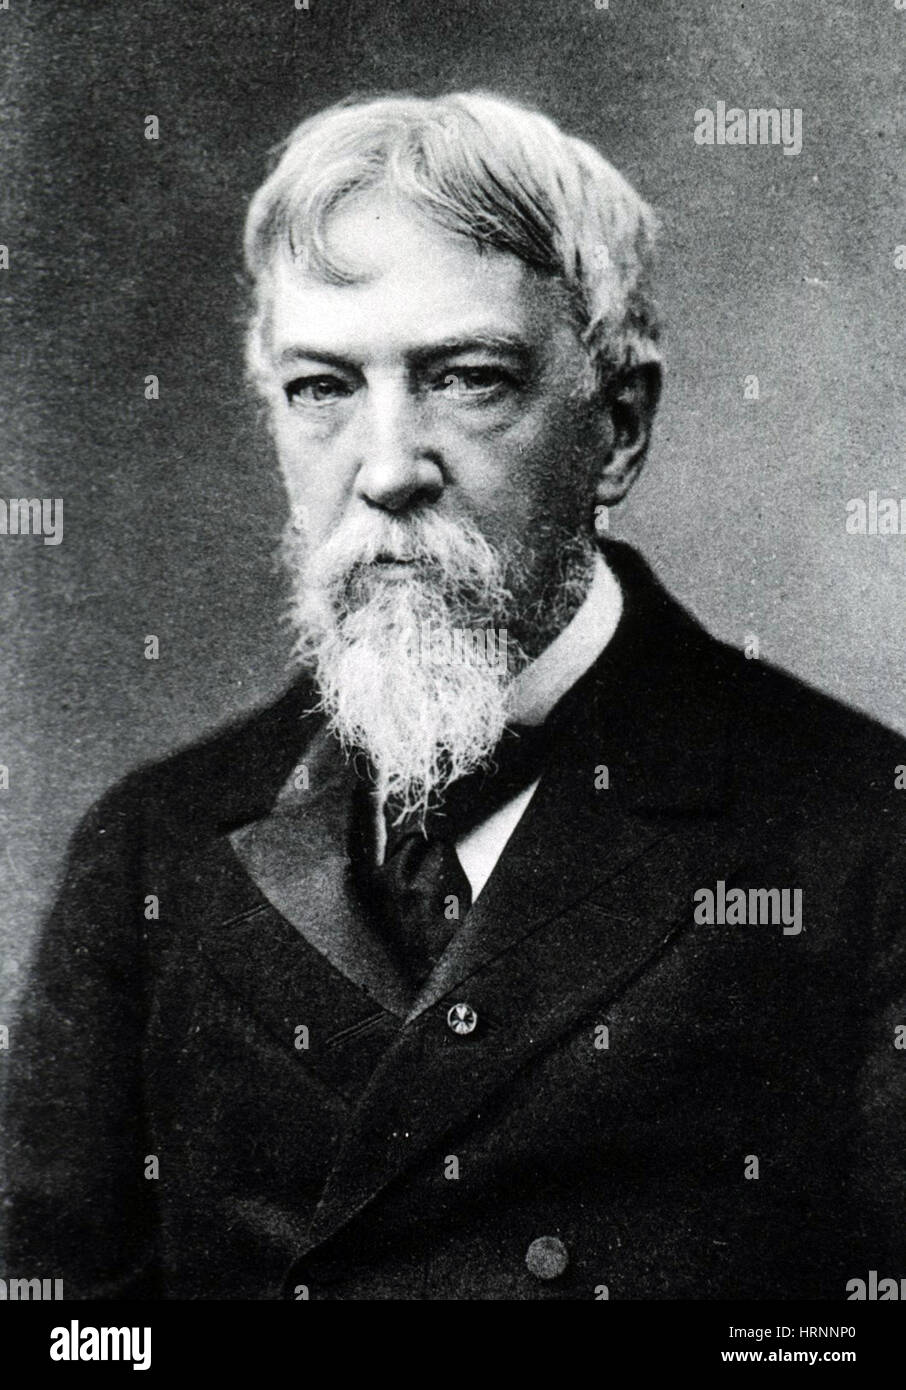 Silas Weir Mitchell, American Physician - Stock Image